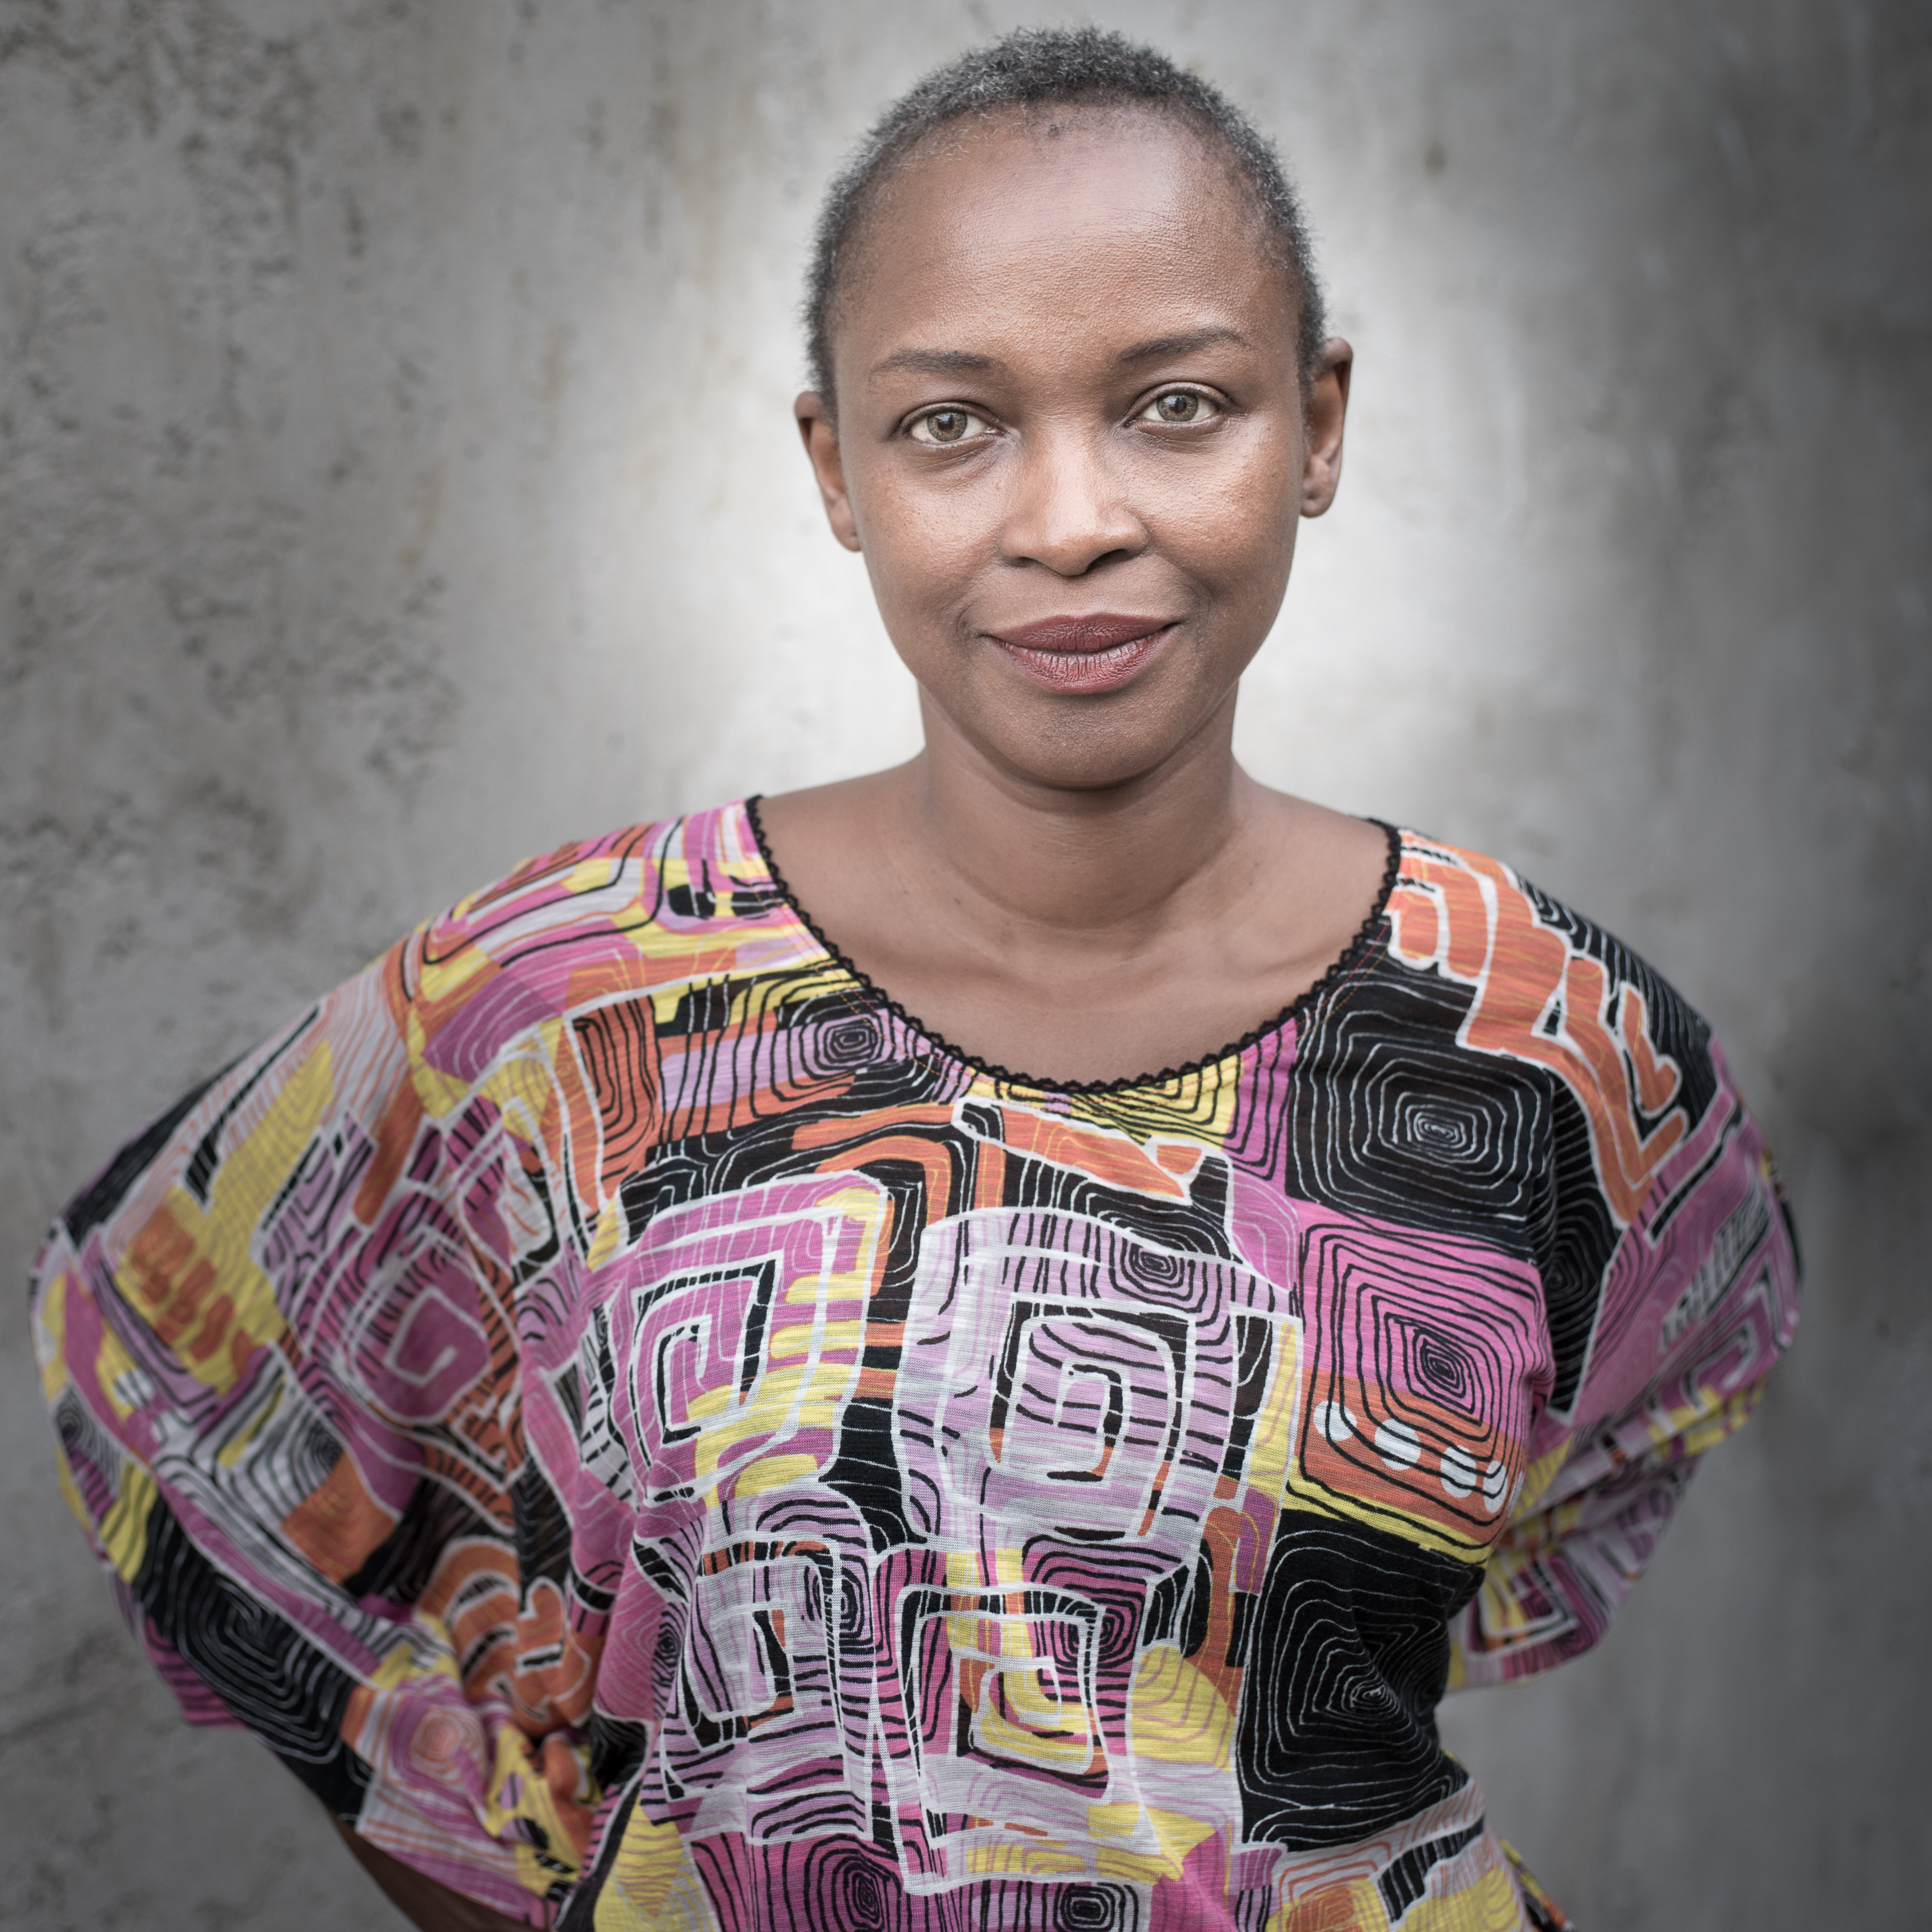 A portrait photograph of Koyo Kouoh, Executive Director and Chief Curator at Zeitz MOCAA